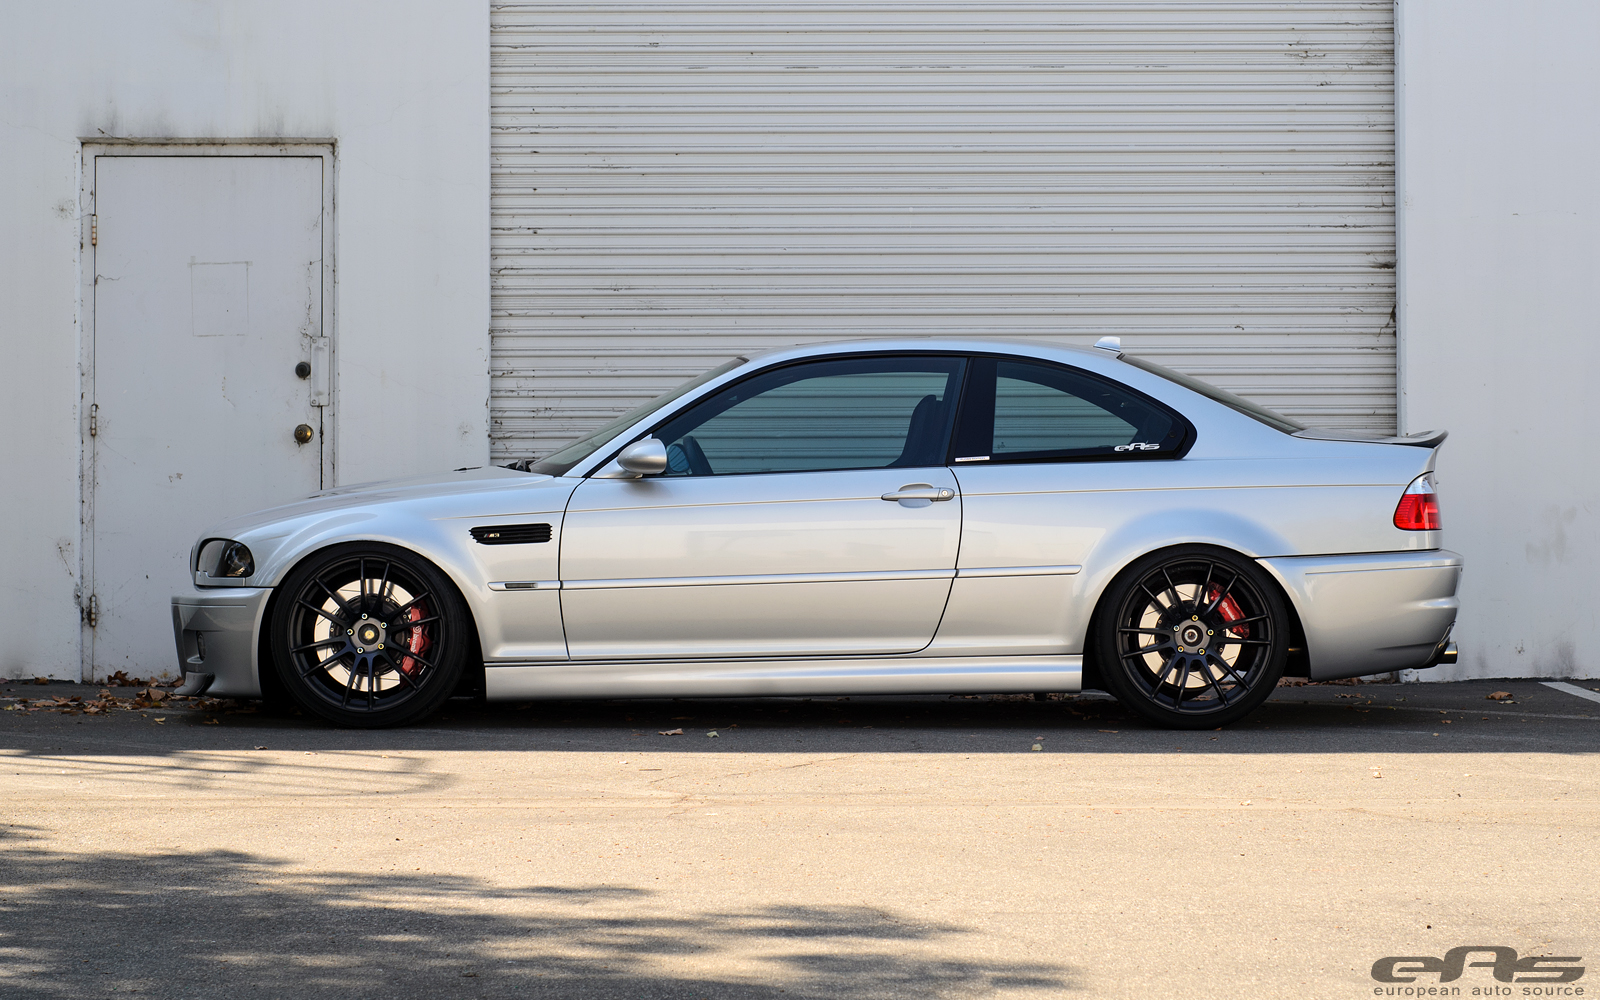 Supercharged Bmw E M Rides On Motorsport Wheels in addition D Lower Radiator Support Replacement Img further Nissan Altima Retrofit Led Interior Light furthermore P moreover Nissan Terra Interior X. on 02 nissan maxima